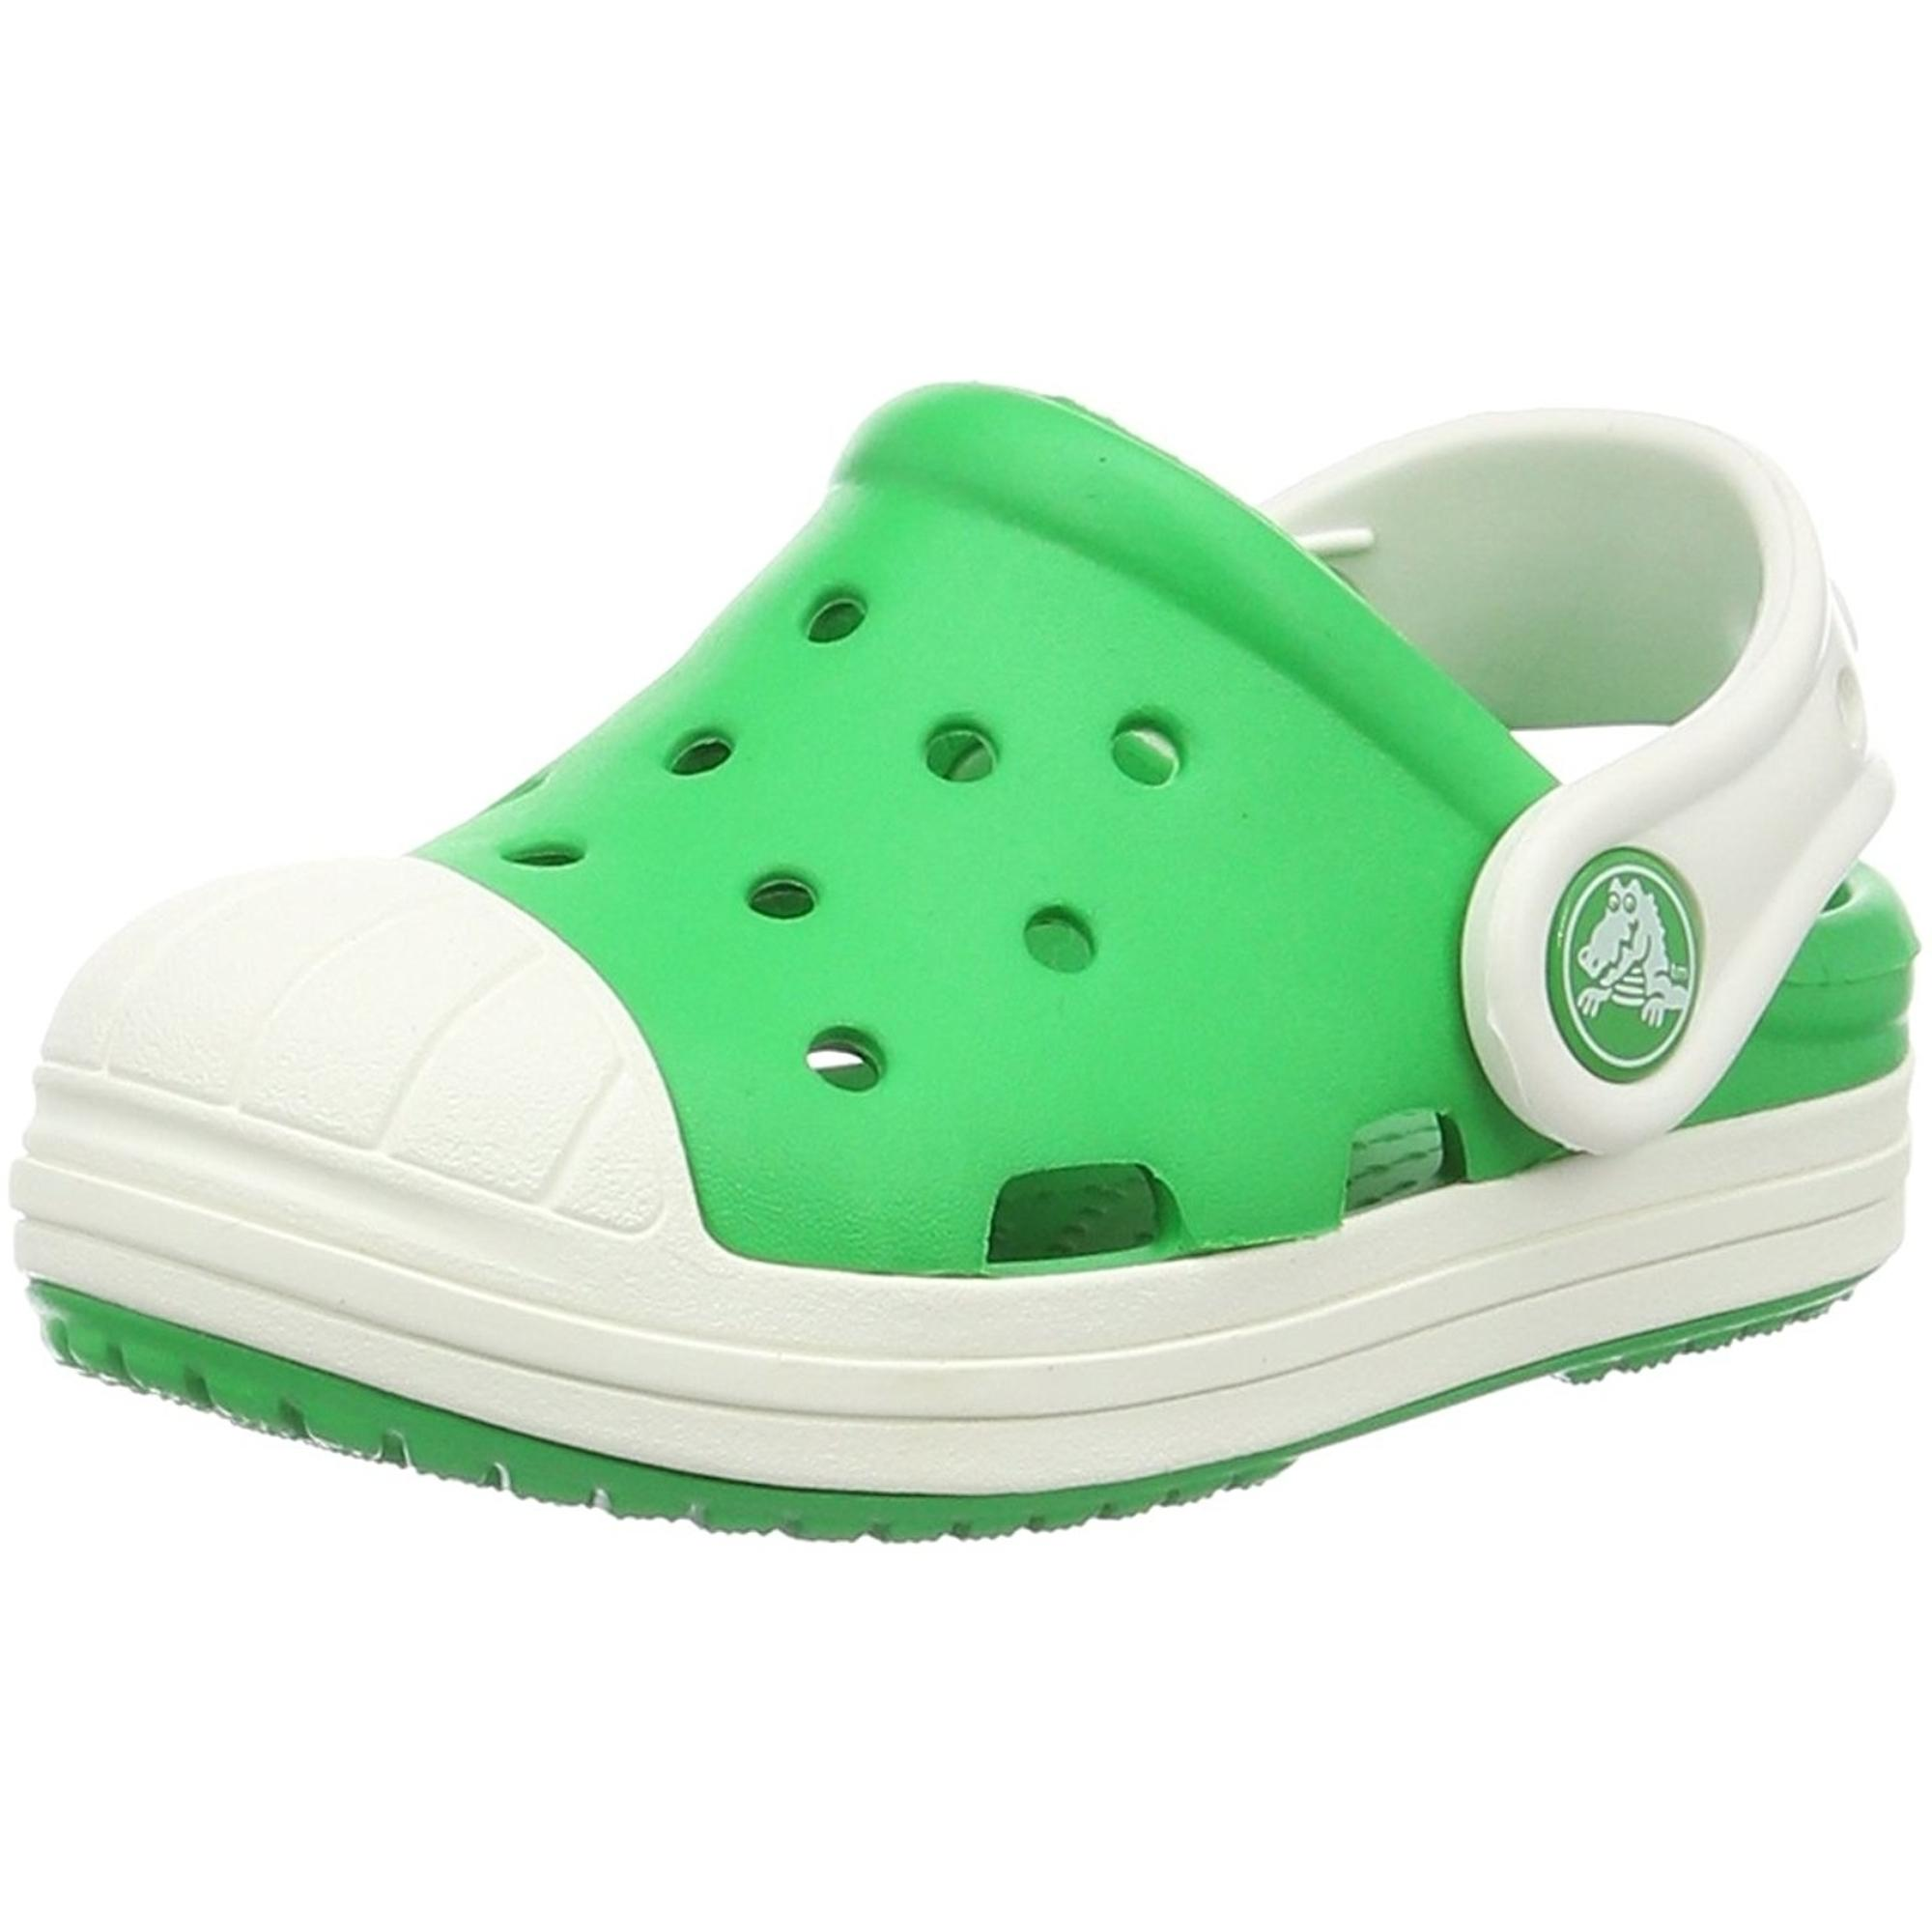 Crocs Bump Säugling It Gras Kids Clog Grün Croslite 5cj3ARL4q